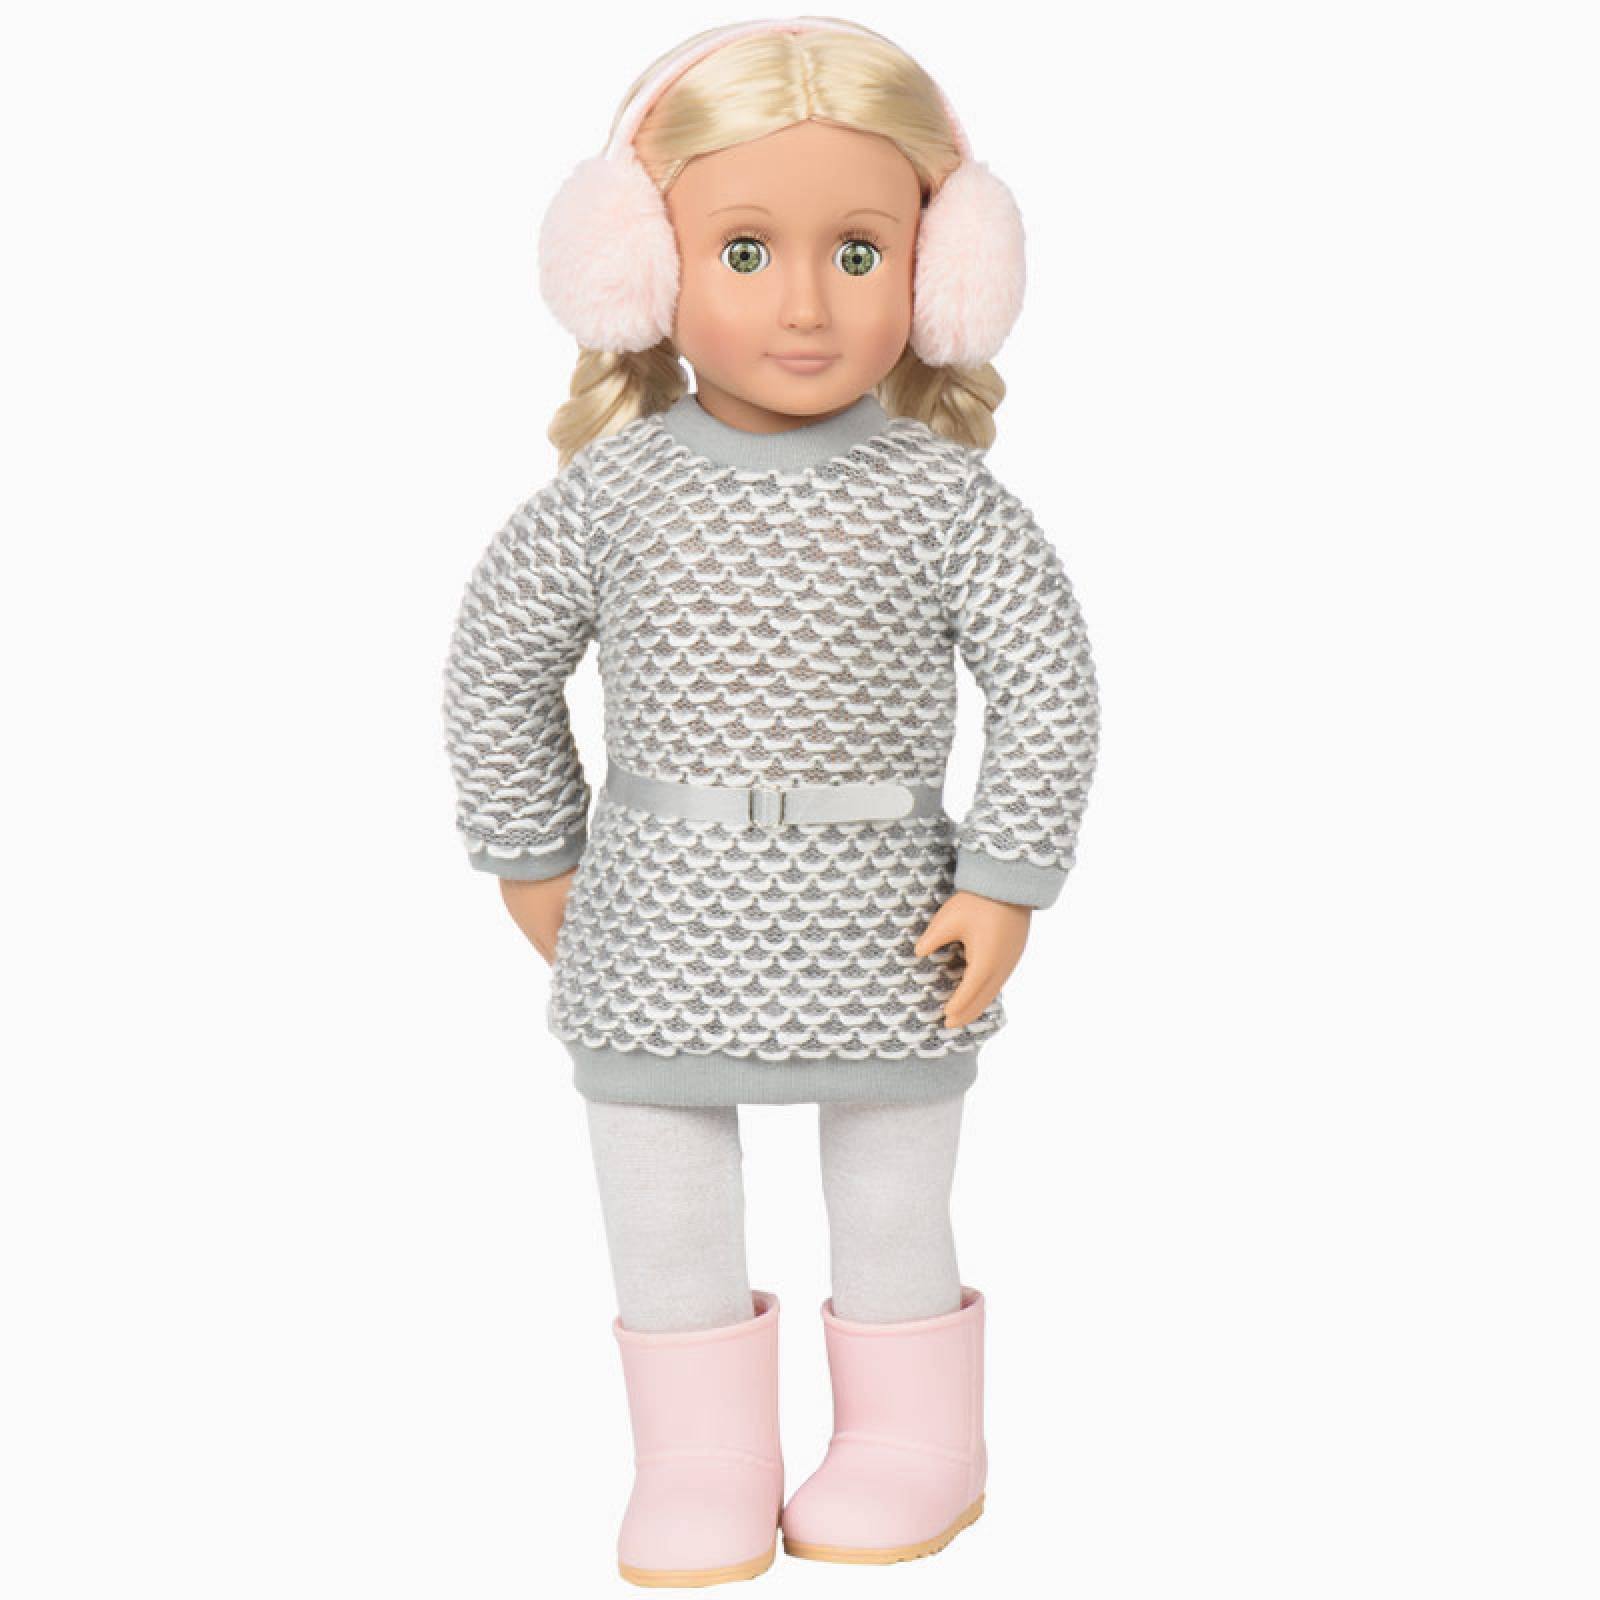 Winter Style - Our Generation Doll Clothes Set 3+ thumbnails